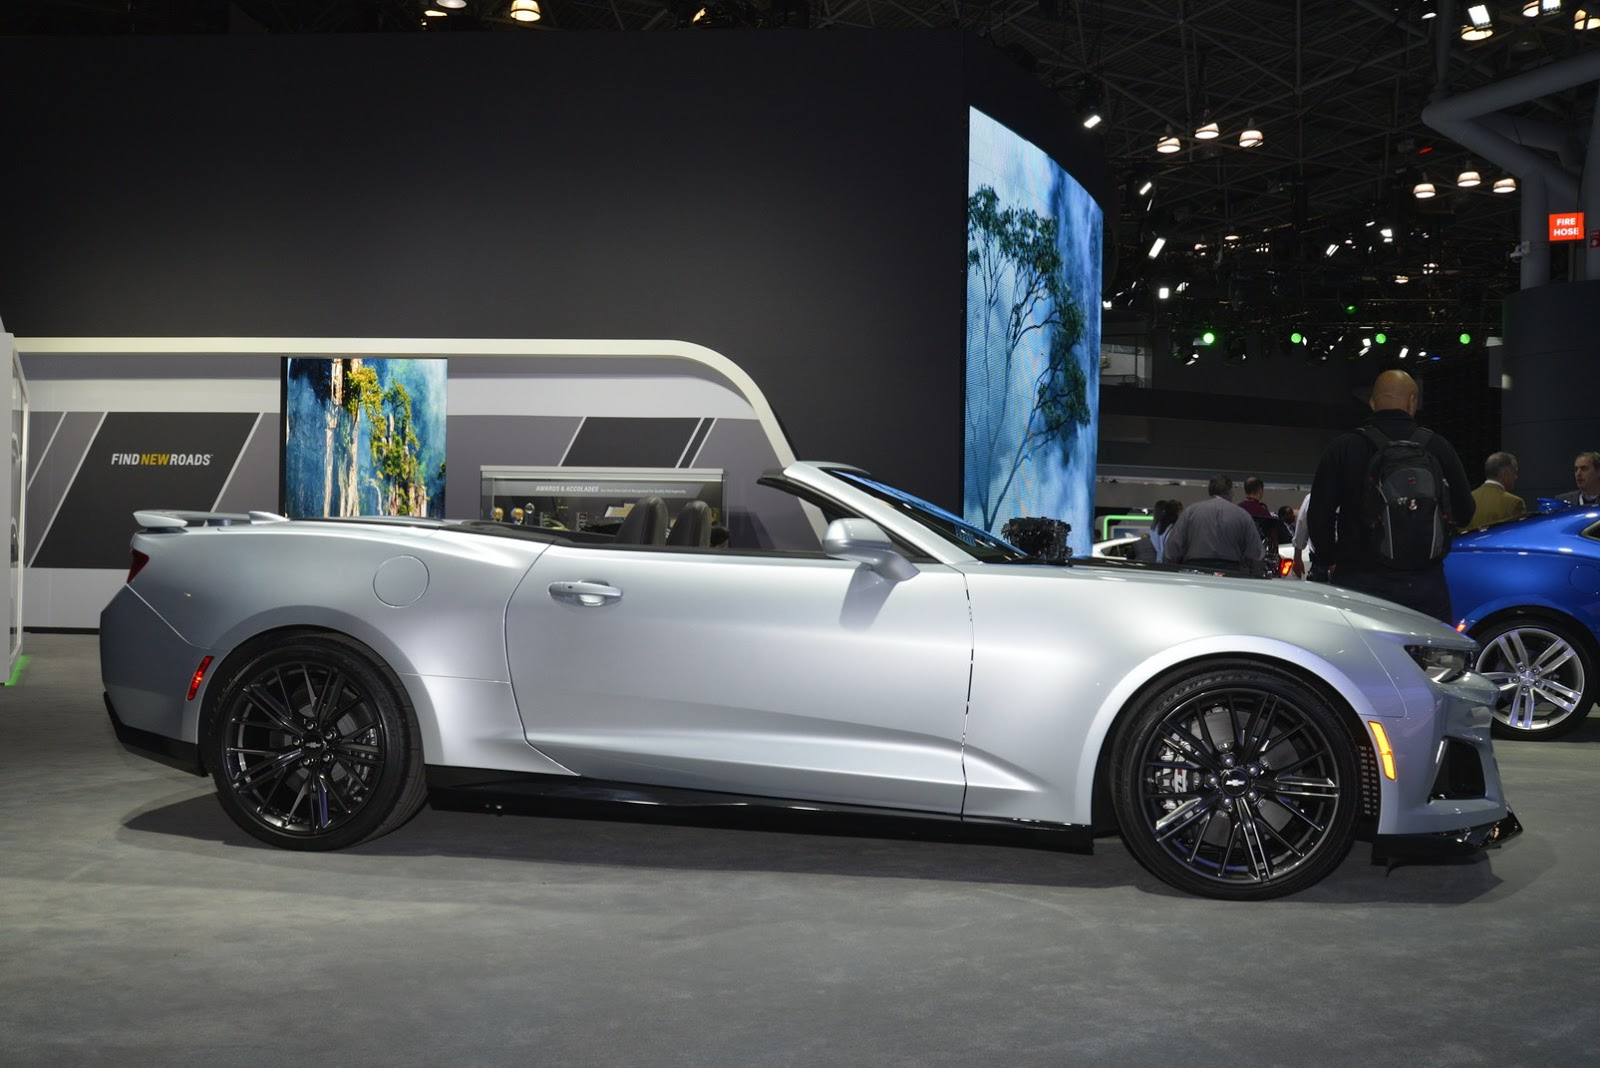 2017 chevrolet camaro zl1 convertible has enough horses to blow your hair away carscoops. Black Bedroom Furniture Sets. Home Design Ideas